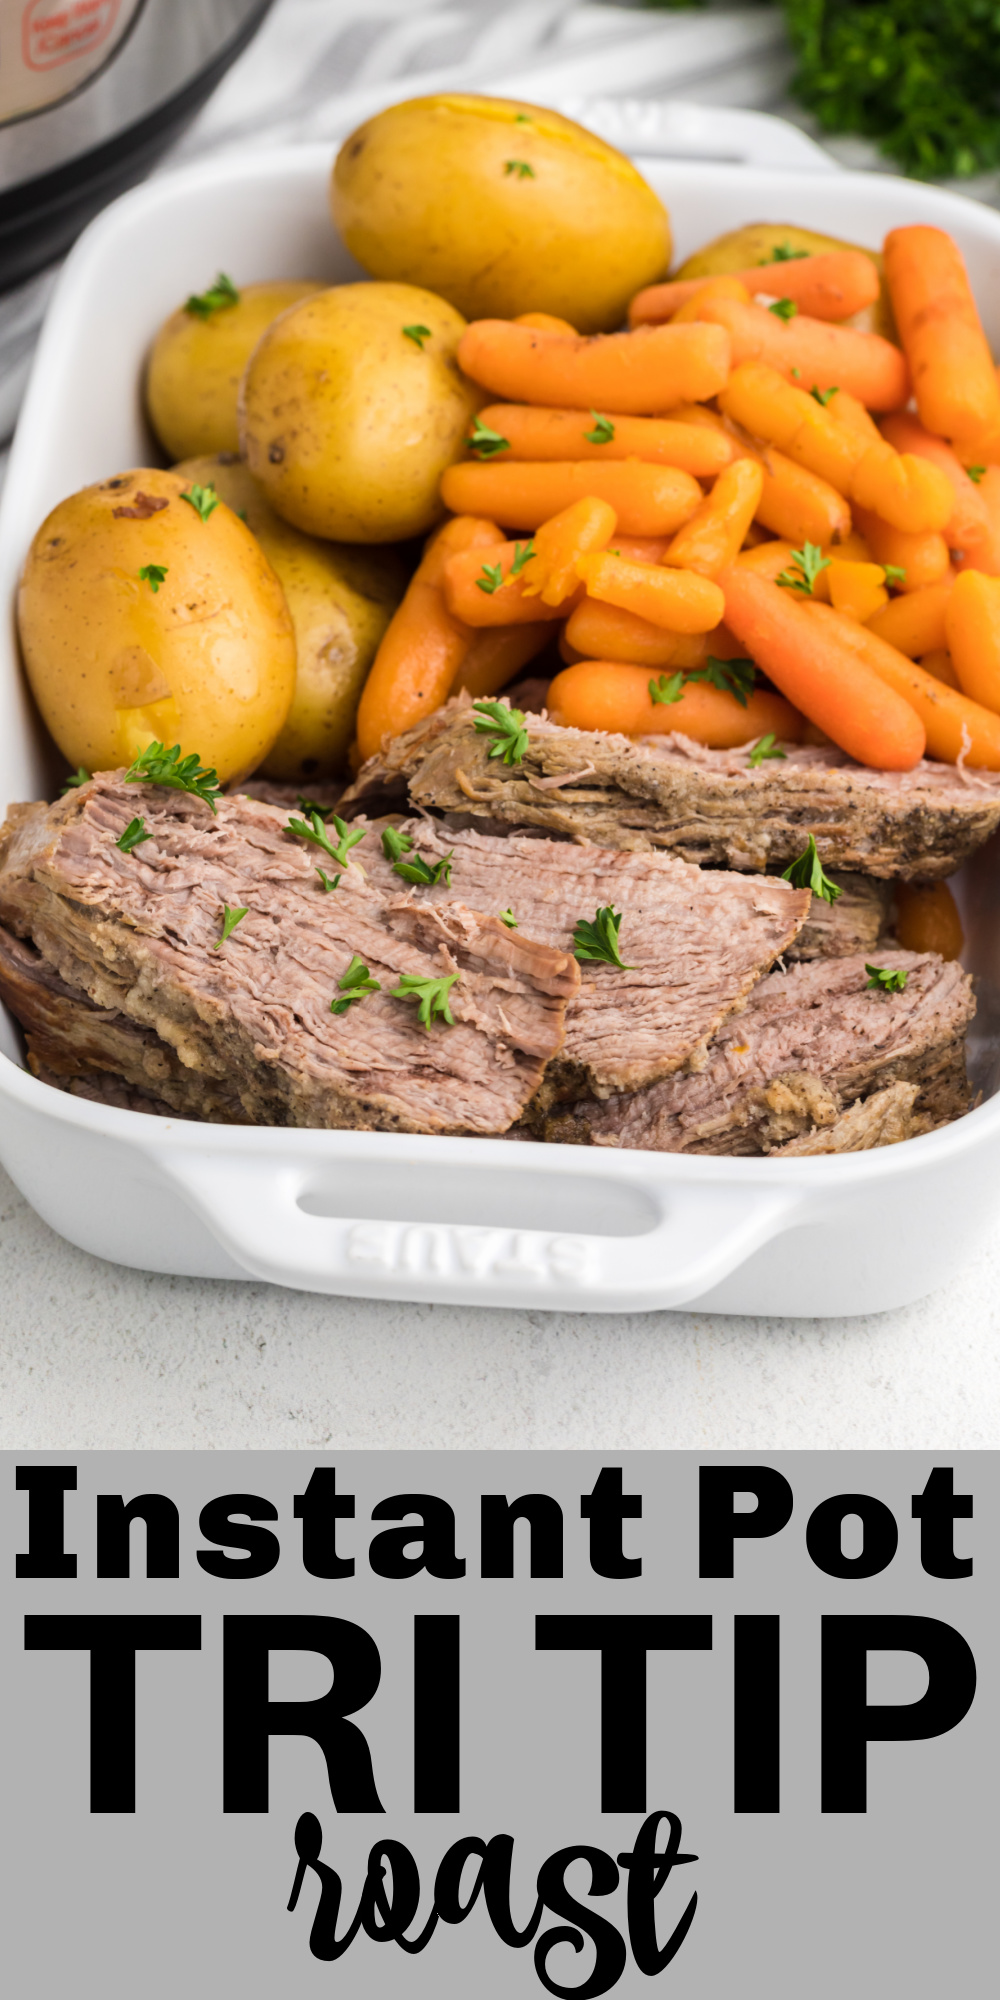 This Instant Pot Tri Tip recipe is made with vegetables and seasonings that will make this dish melt in your mouth. It's a hearty and filling dinner that's made quick and easy in the pressure cooker.